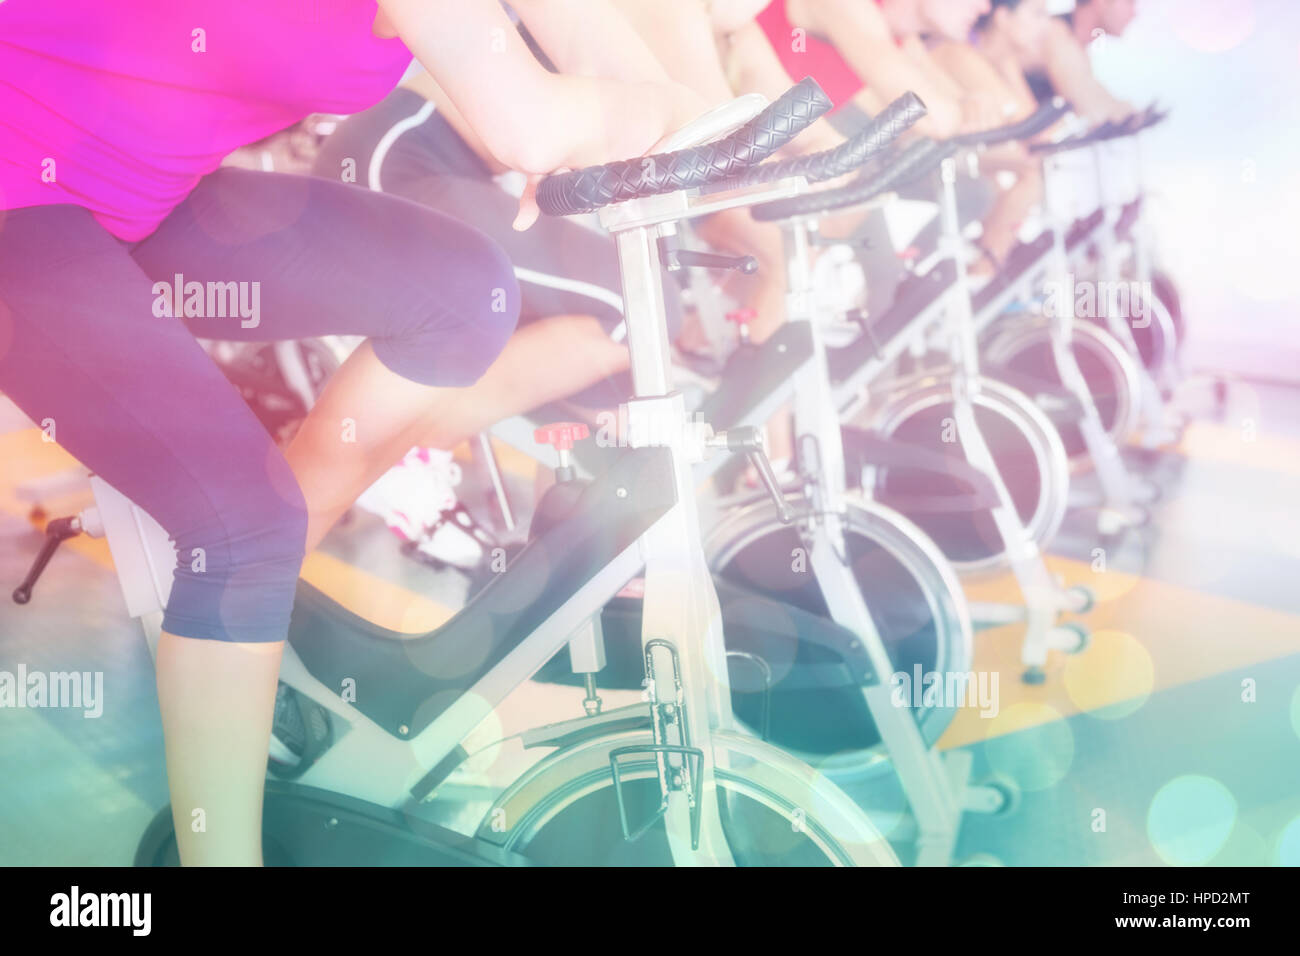 Spin class working out in a row against abstract background - Stock Image